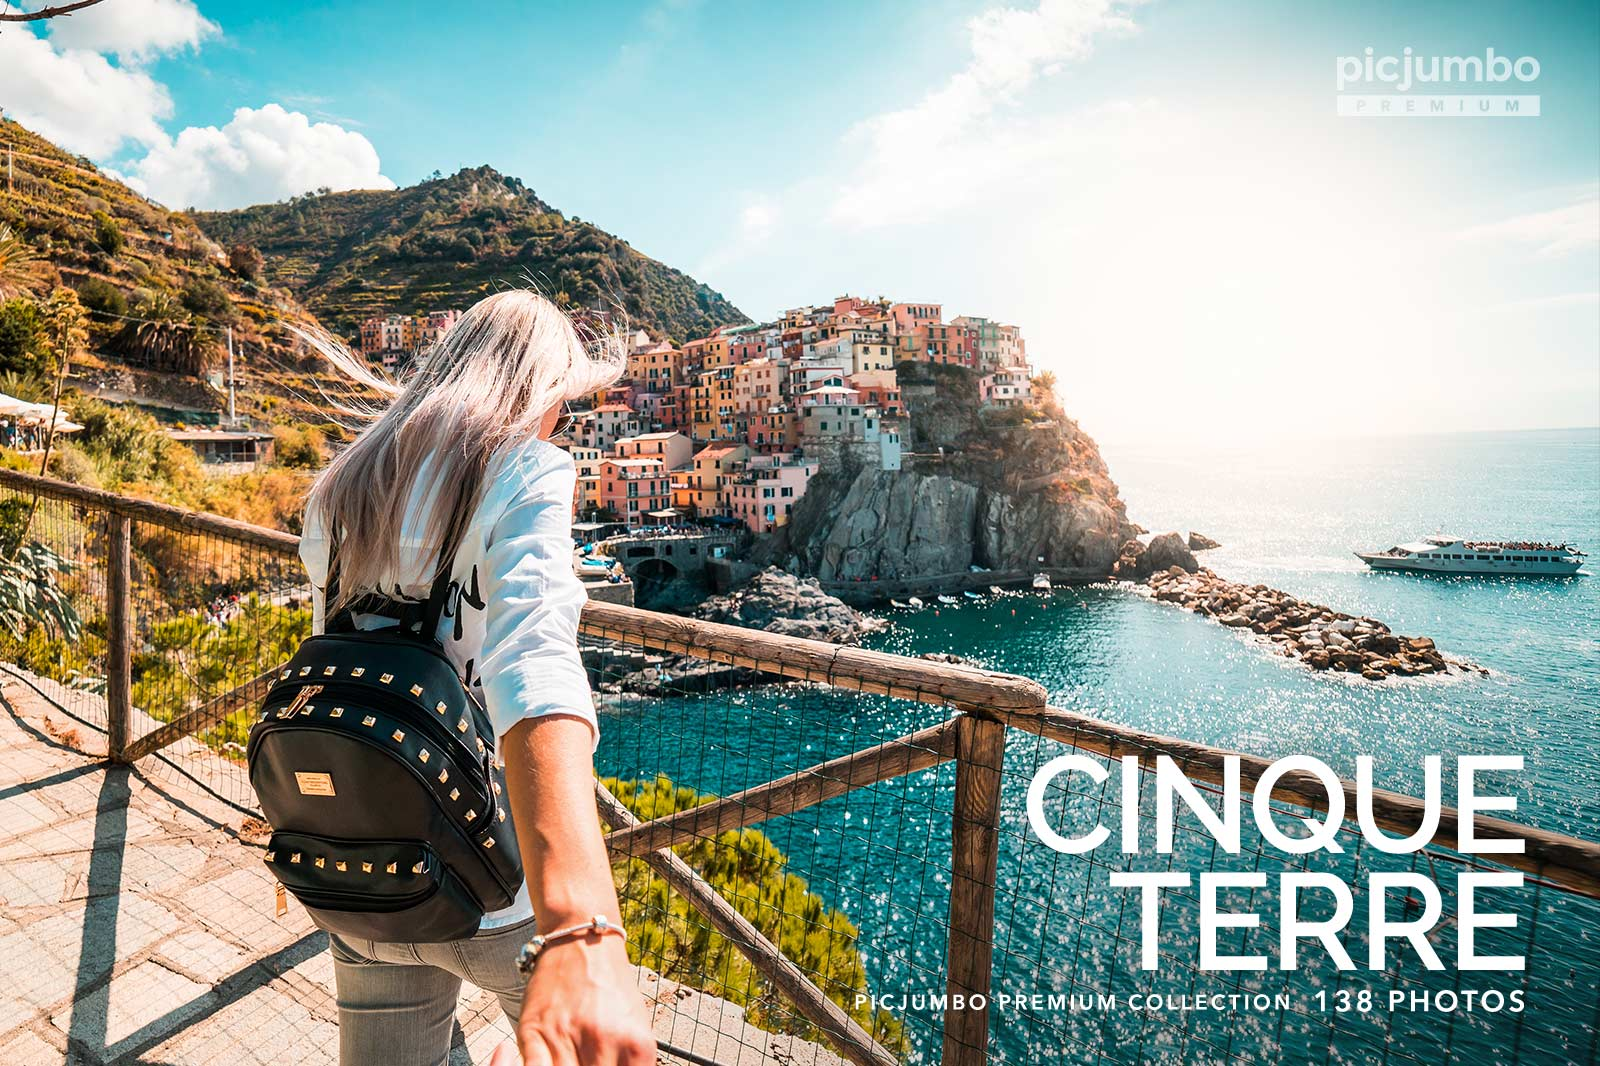 Cinque Terre — get it now in picjumbo PREMIUM!